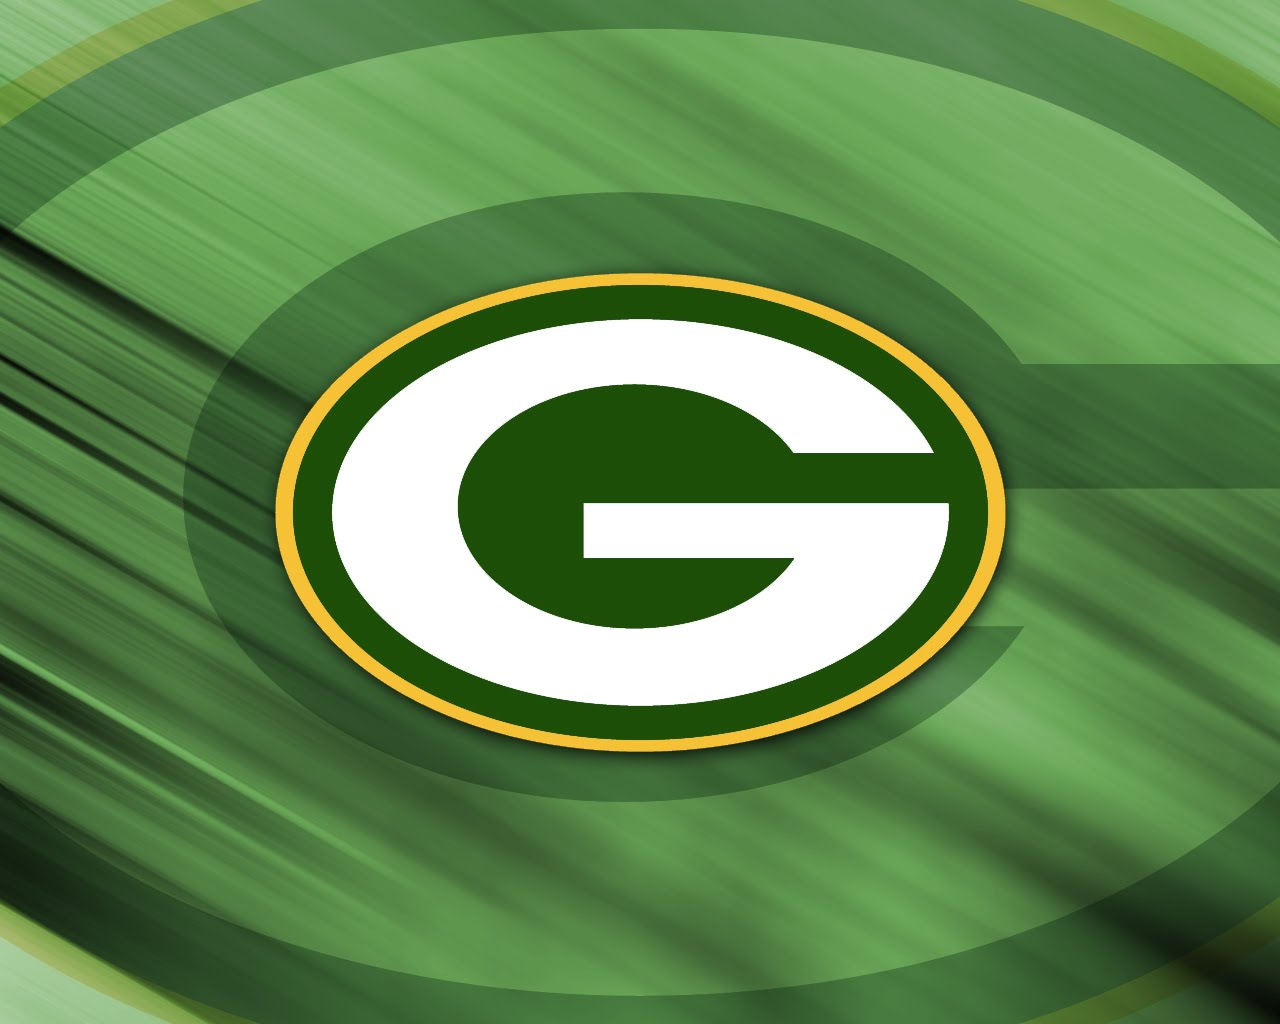 http://4.bp.blogspot.com/-NVa0ABF48Is/TcDFjvbjYtI/AAAAAAAAASc/M6lF8wmeeNQ/s1600/logo%2Bgreen-bay-packers-wallpaper-14153.jpg